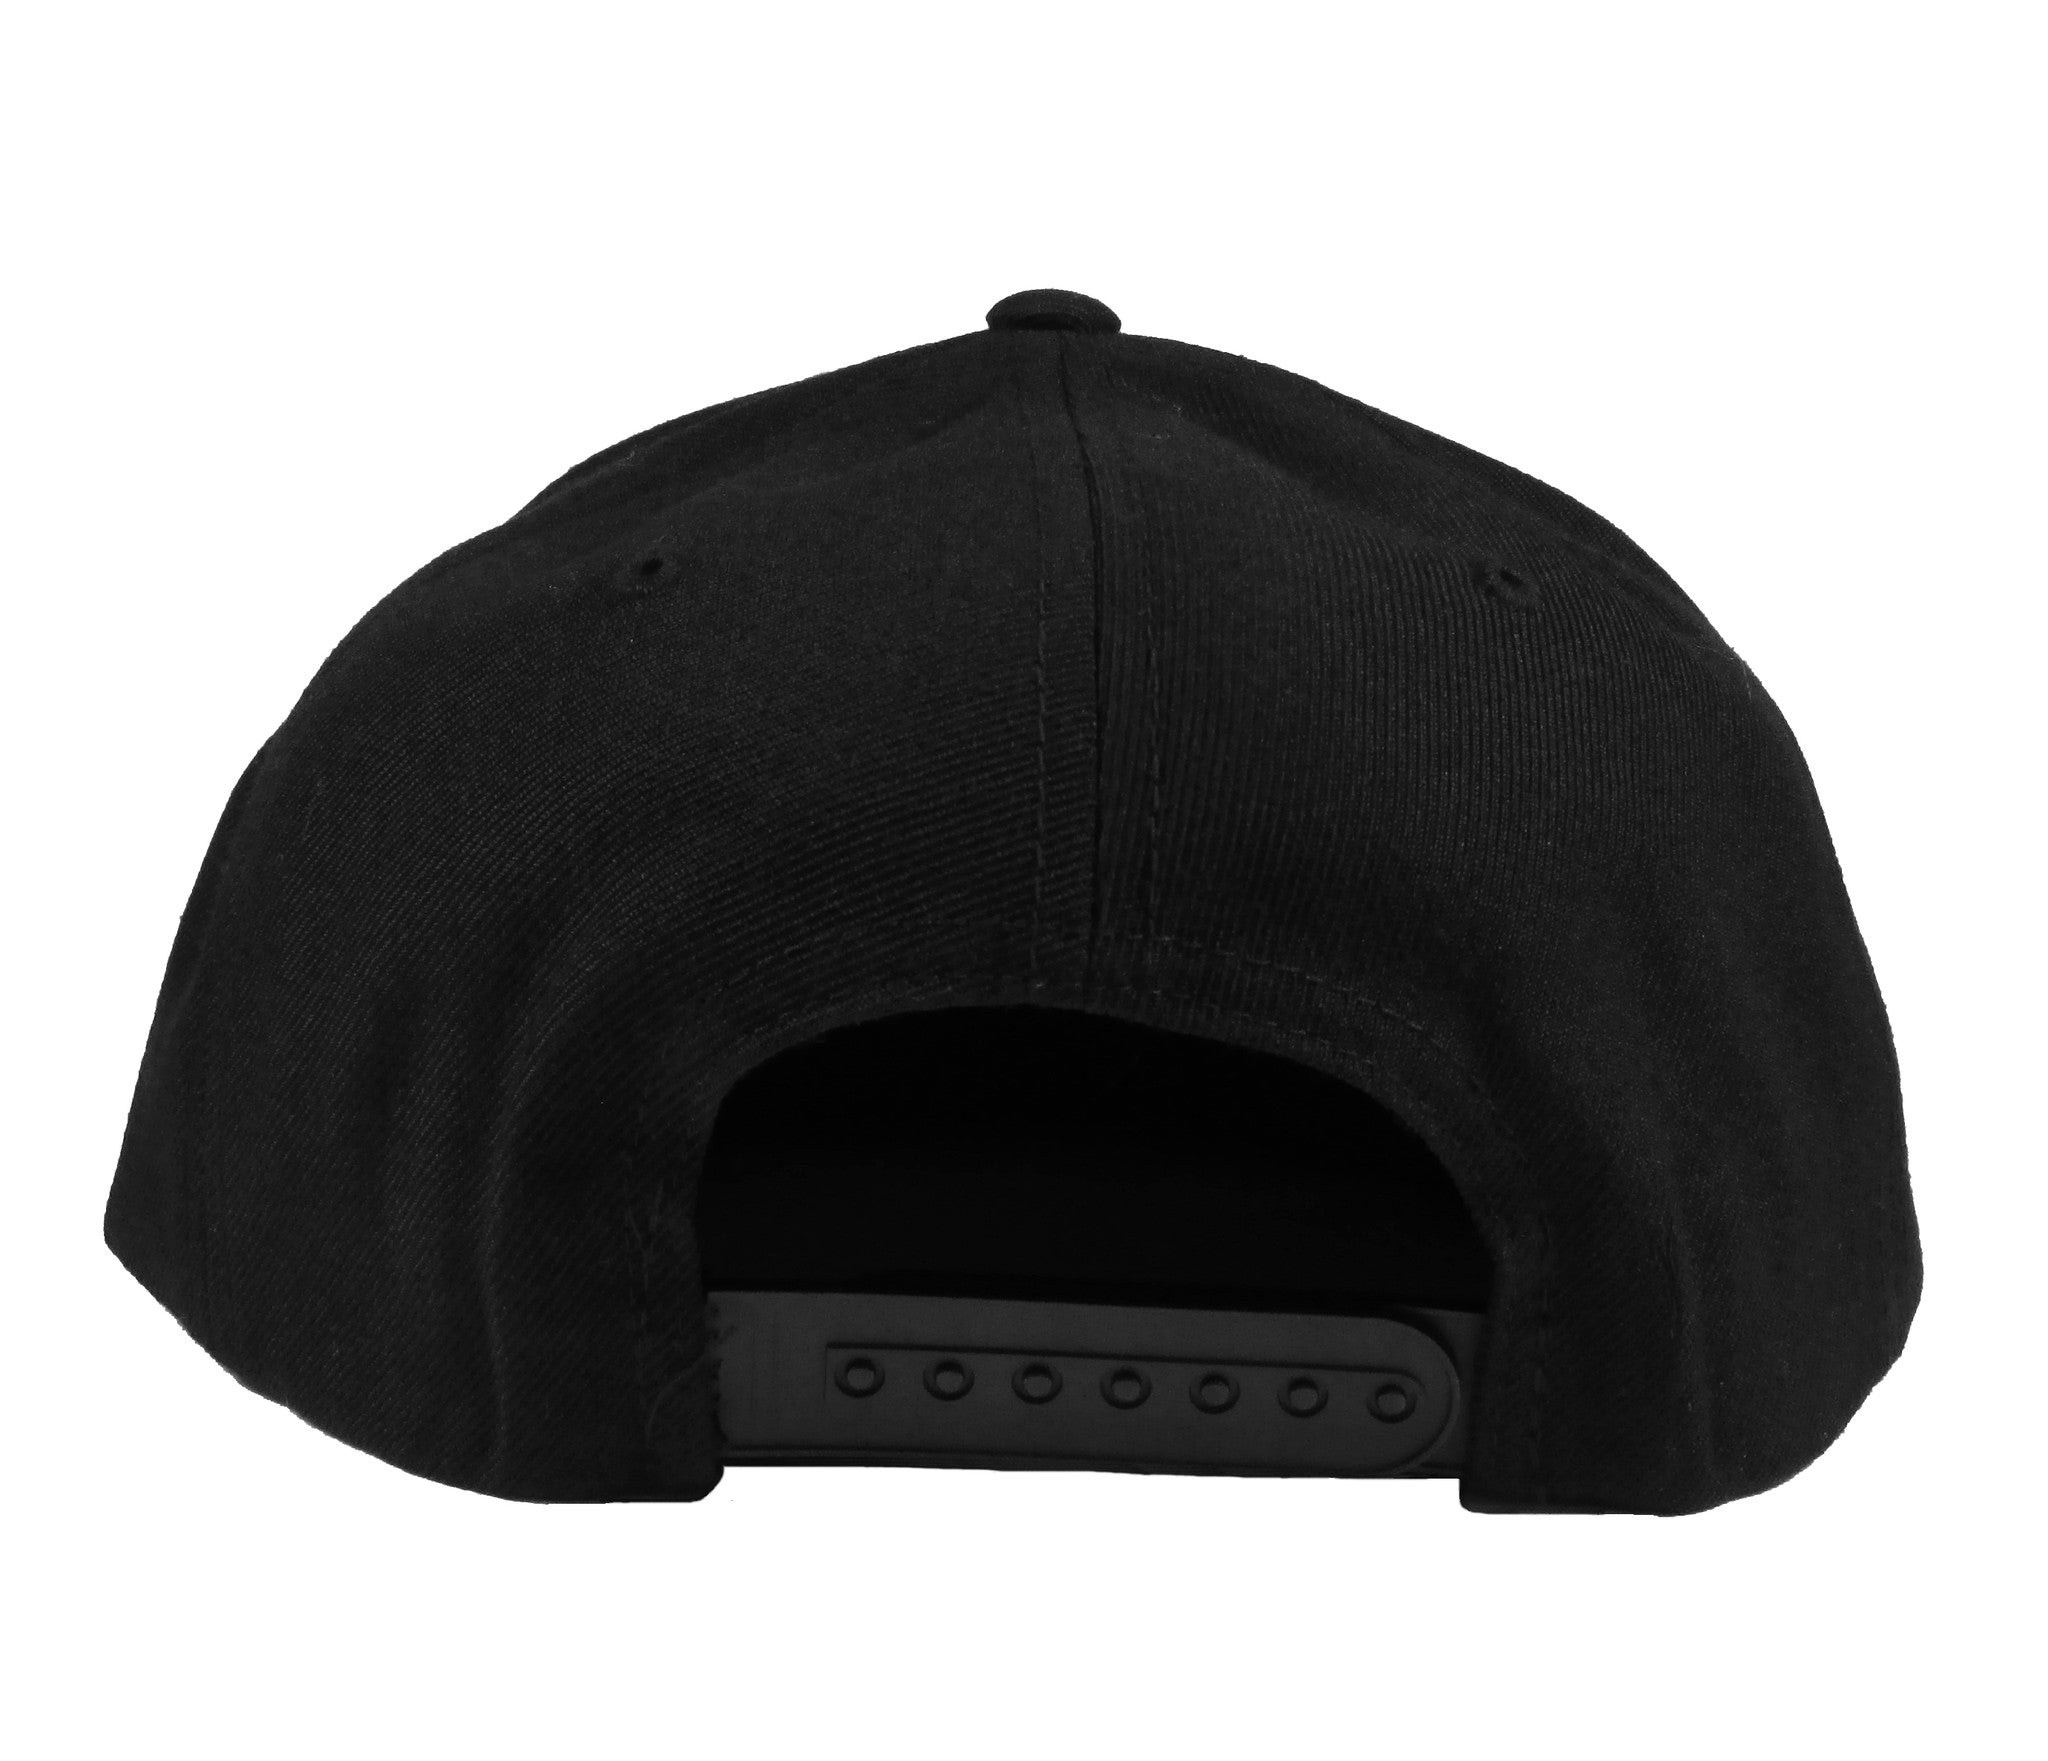 Alex & Chloe Black Snap Back Back View